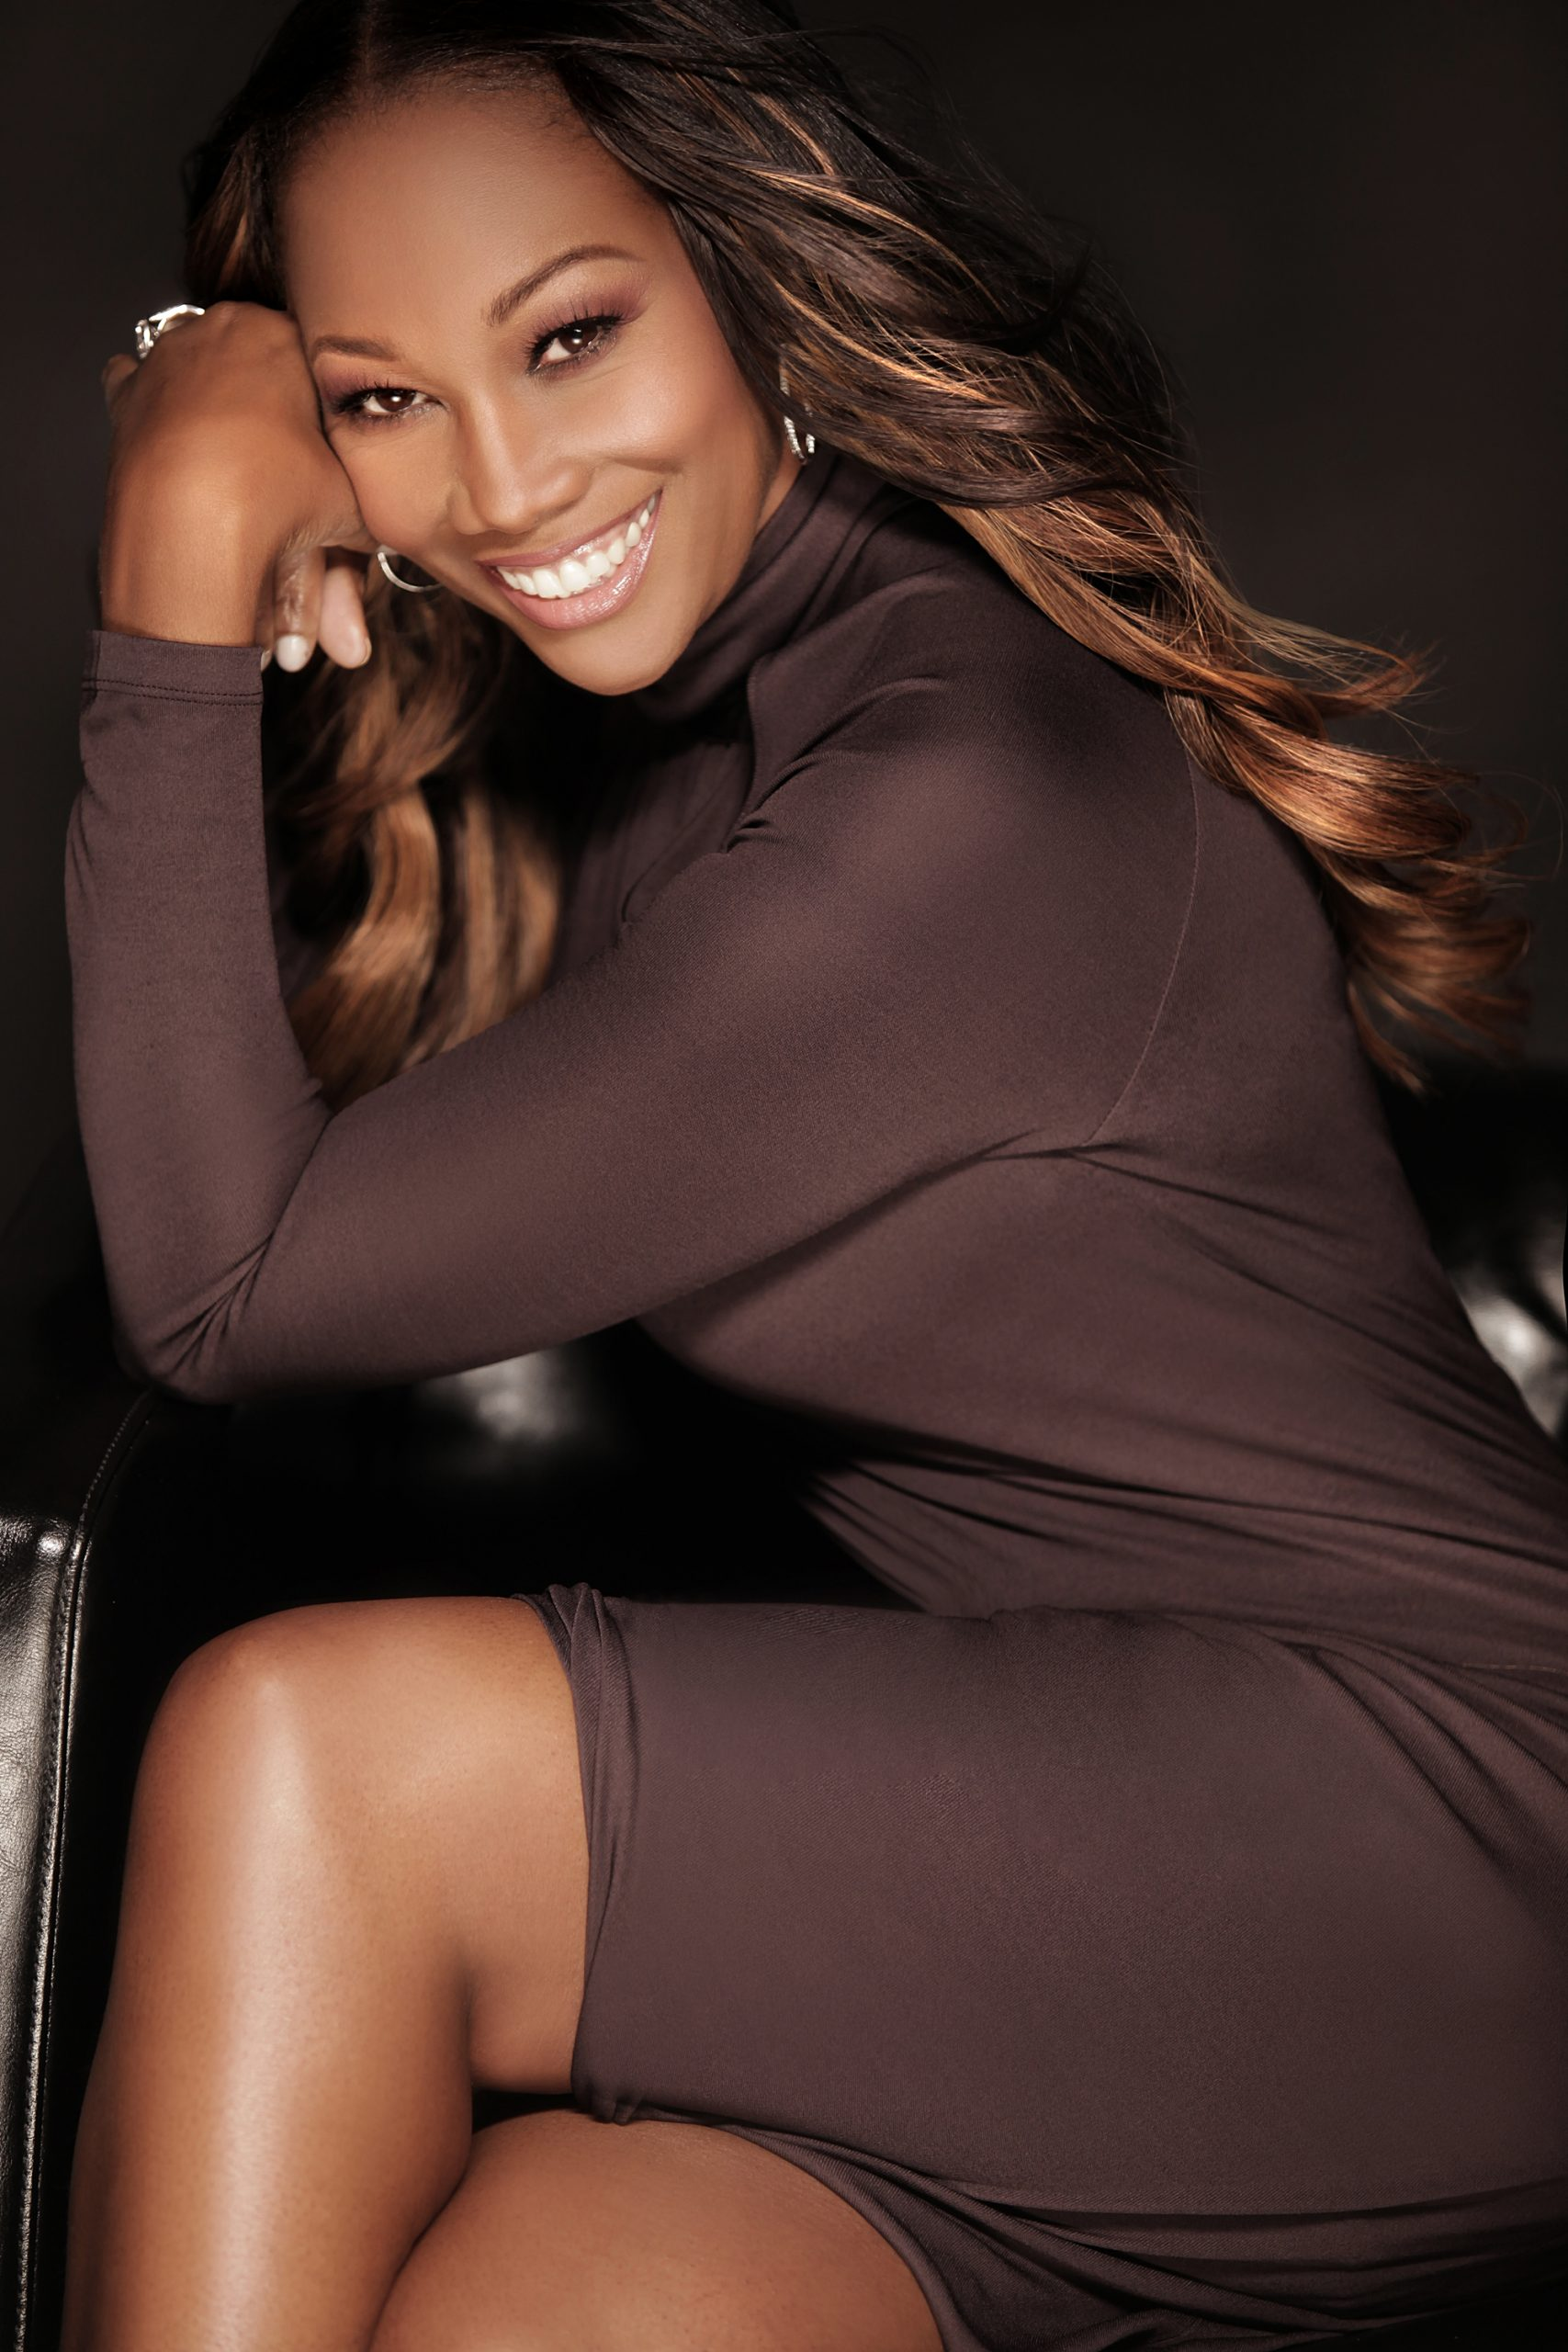 By Dennis J. Freeman Gospel great Yolanda Adams is on the move. Then again, Adams has never really slowed down...